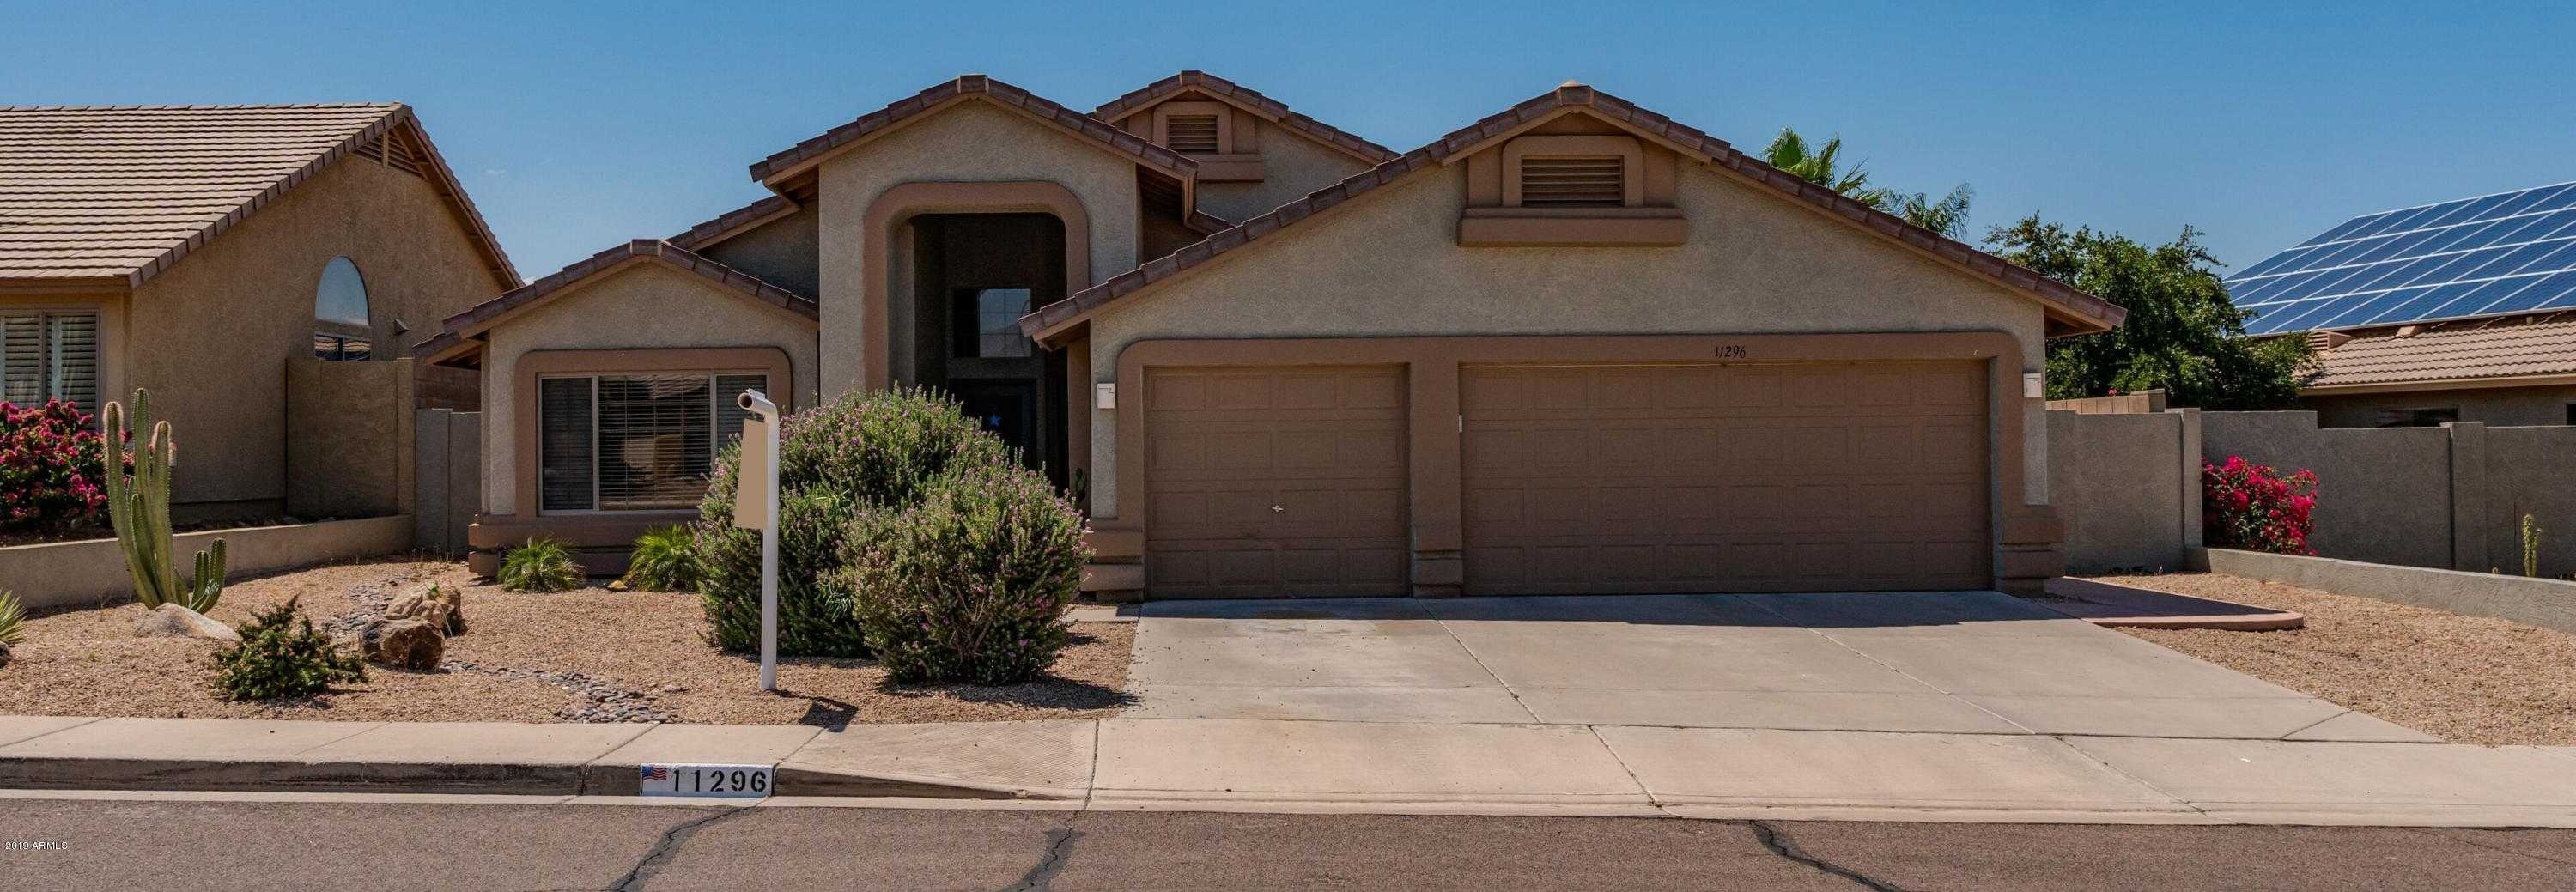 $309,000 - 4Br/2Ba - Home for Sale in Estrella Parcel 56a, Goodyear